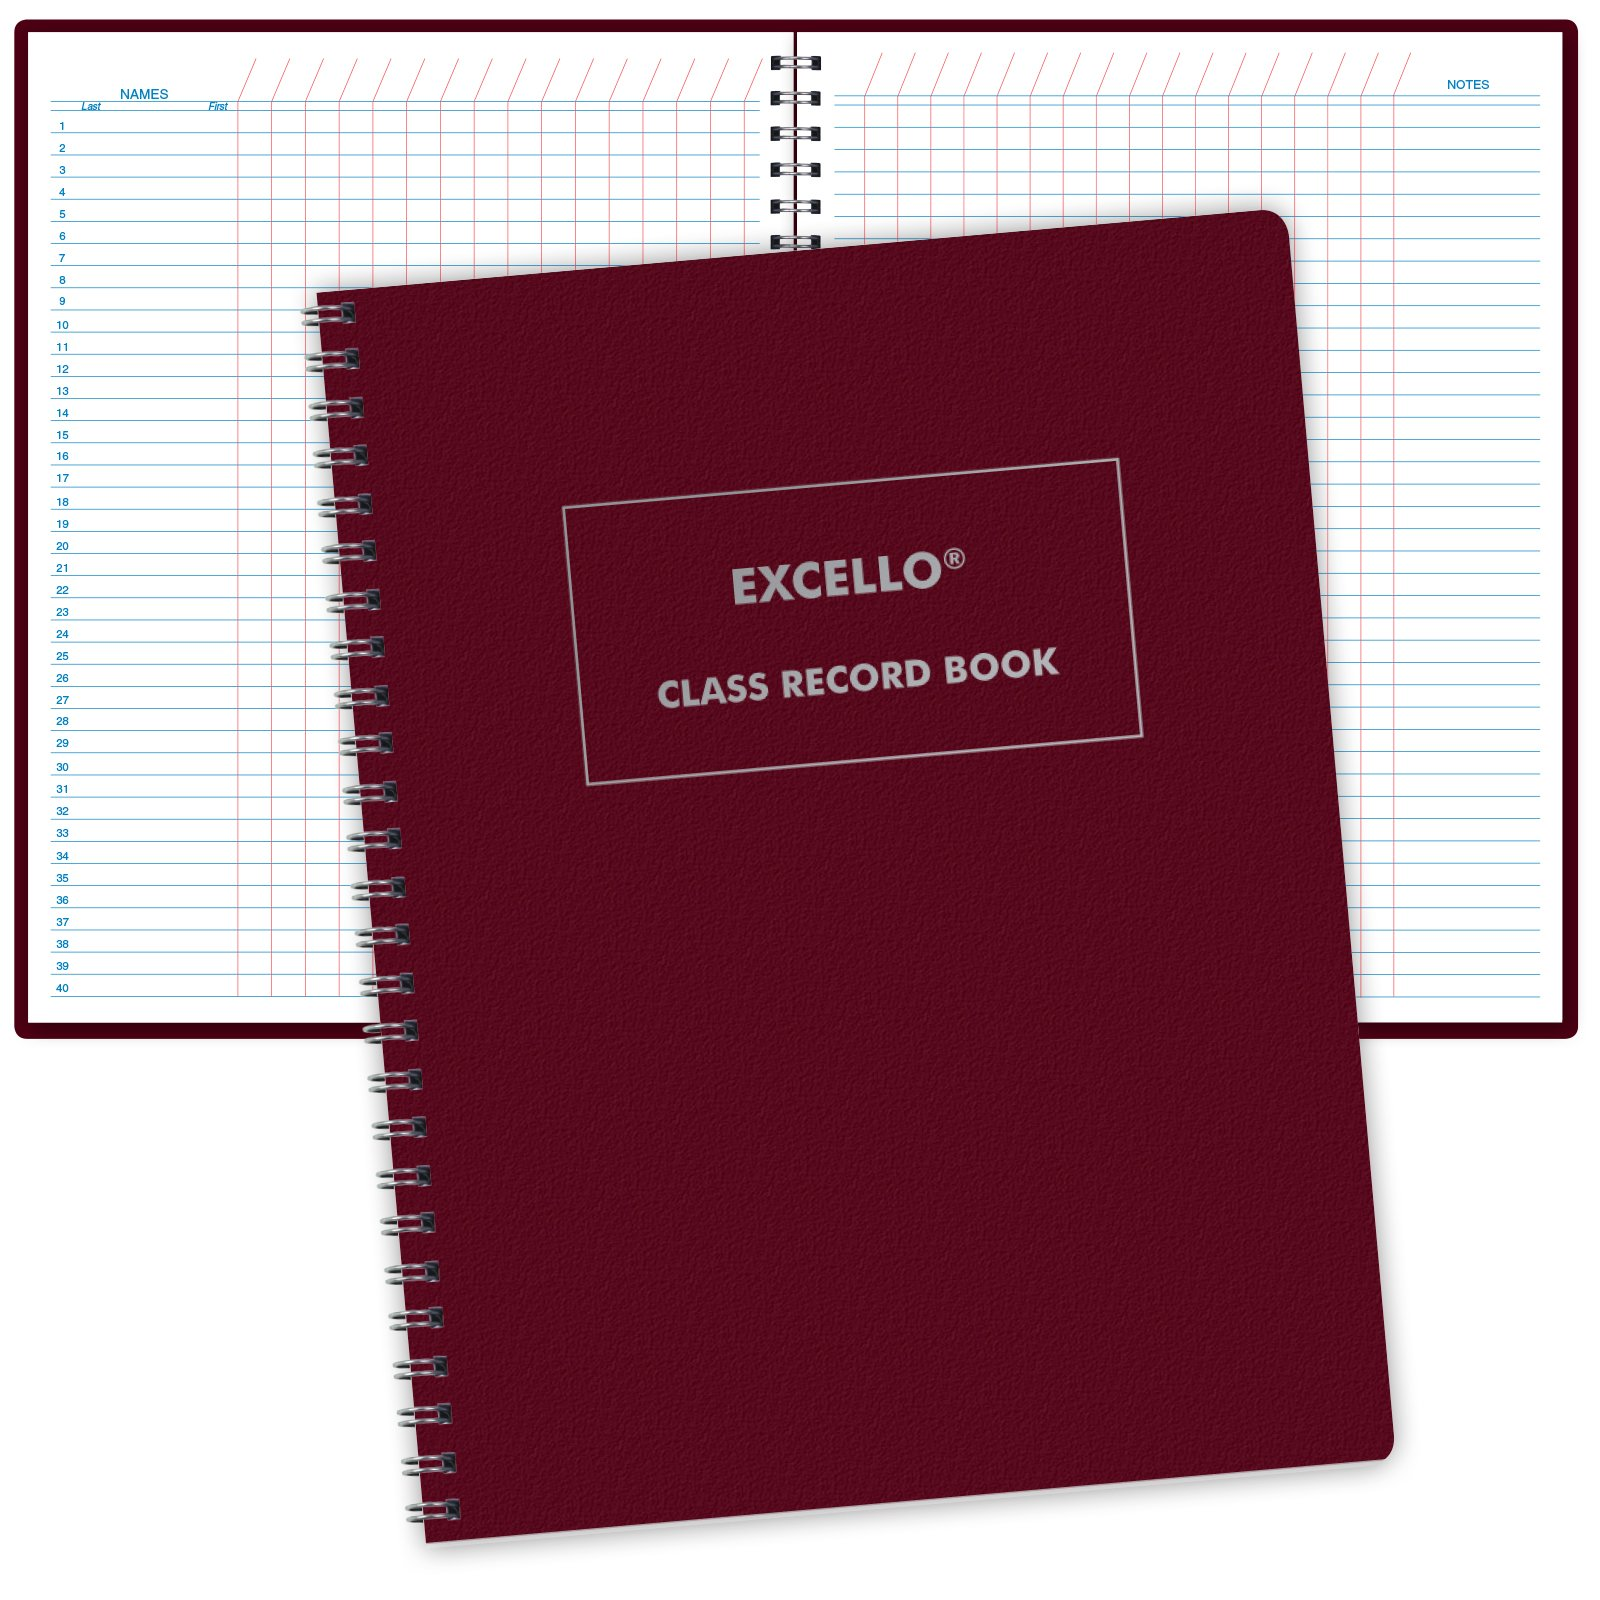 Class Record Book Unstructured...set it up to record grades your way! 40 student names (Excello) by ELAN Publishing Company